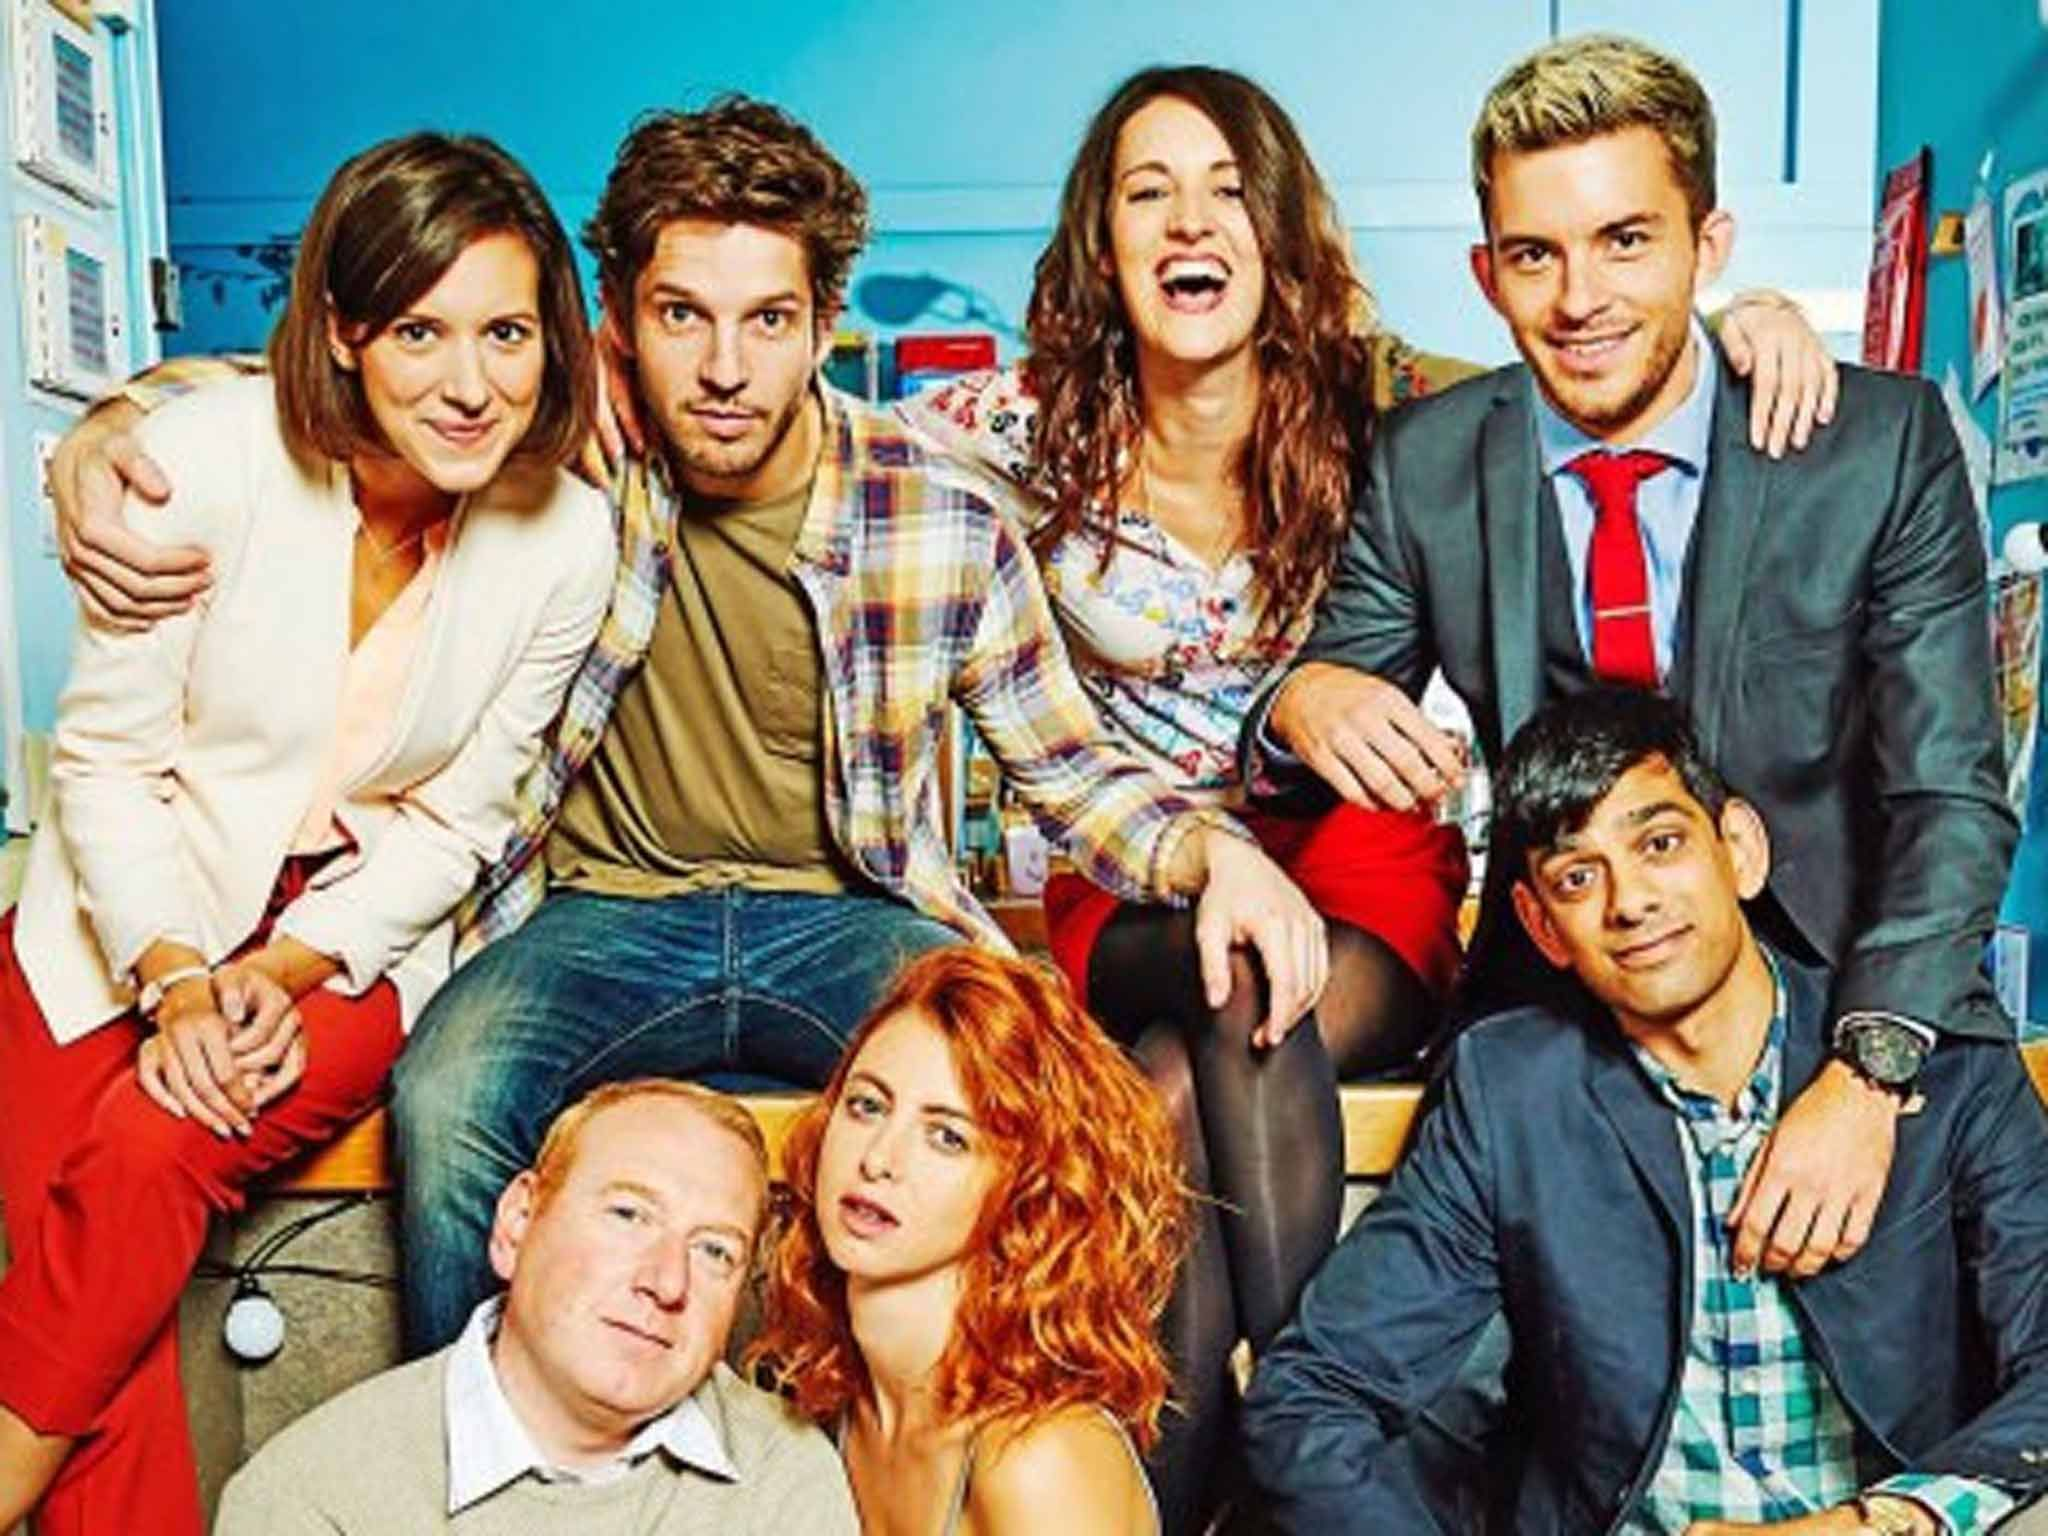 tv shows 2016 comedy. crashing, channel 4 - tv review: a noisy, sweary, fast-paced show tv shows 2016 comedy